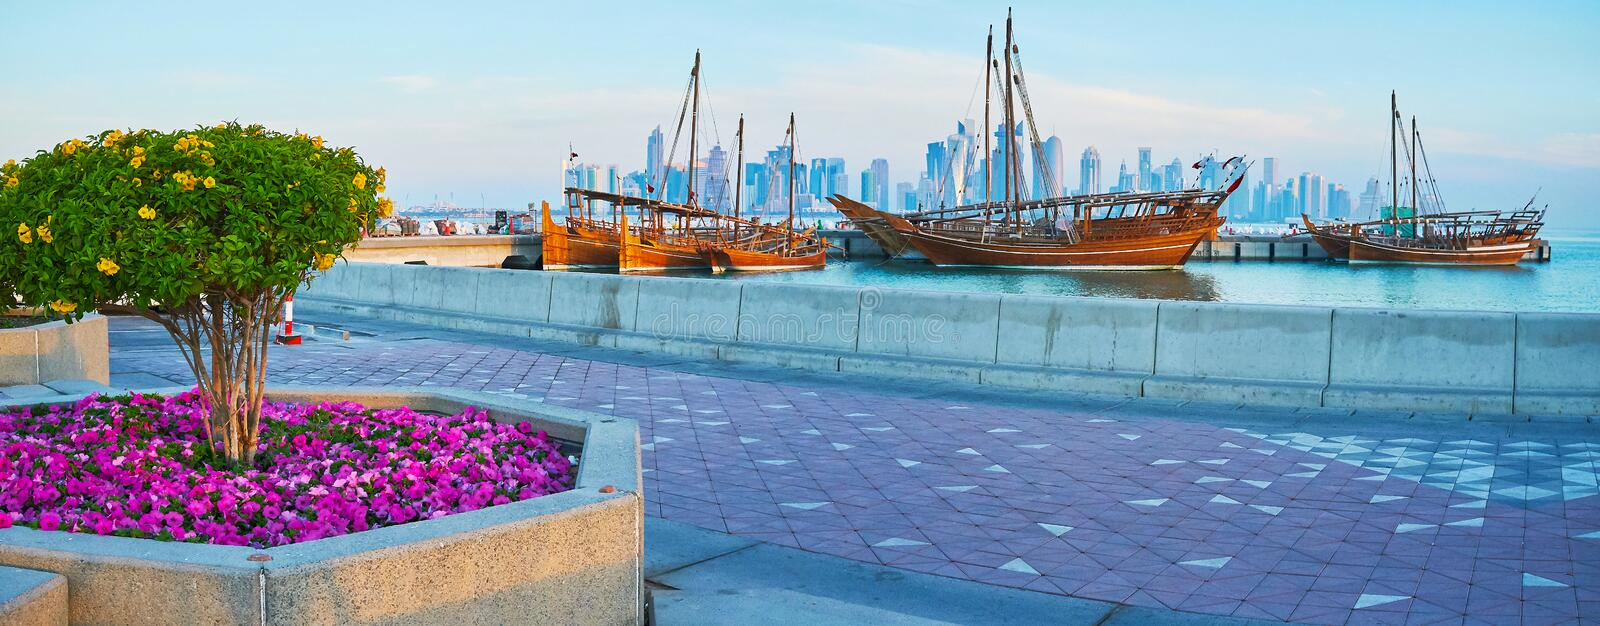 Panorama of Doha harbor, Qatar. Morning is the best time for the lazy walk in Doha harbor, enjoying the beautiful flower beds, old wooden dhow boats and the royalty free stock photography